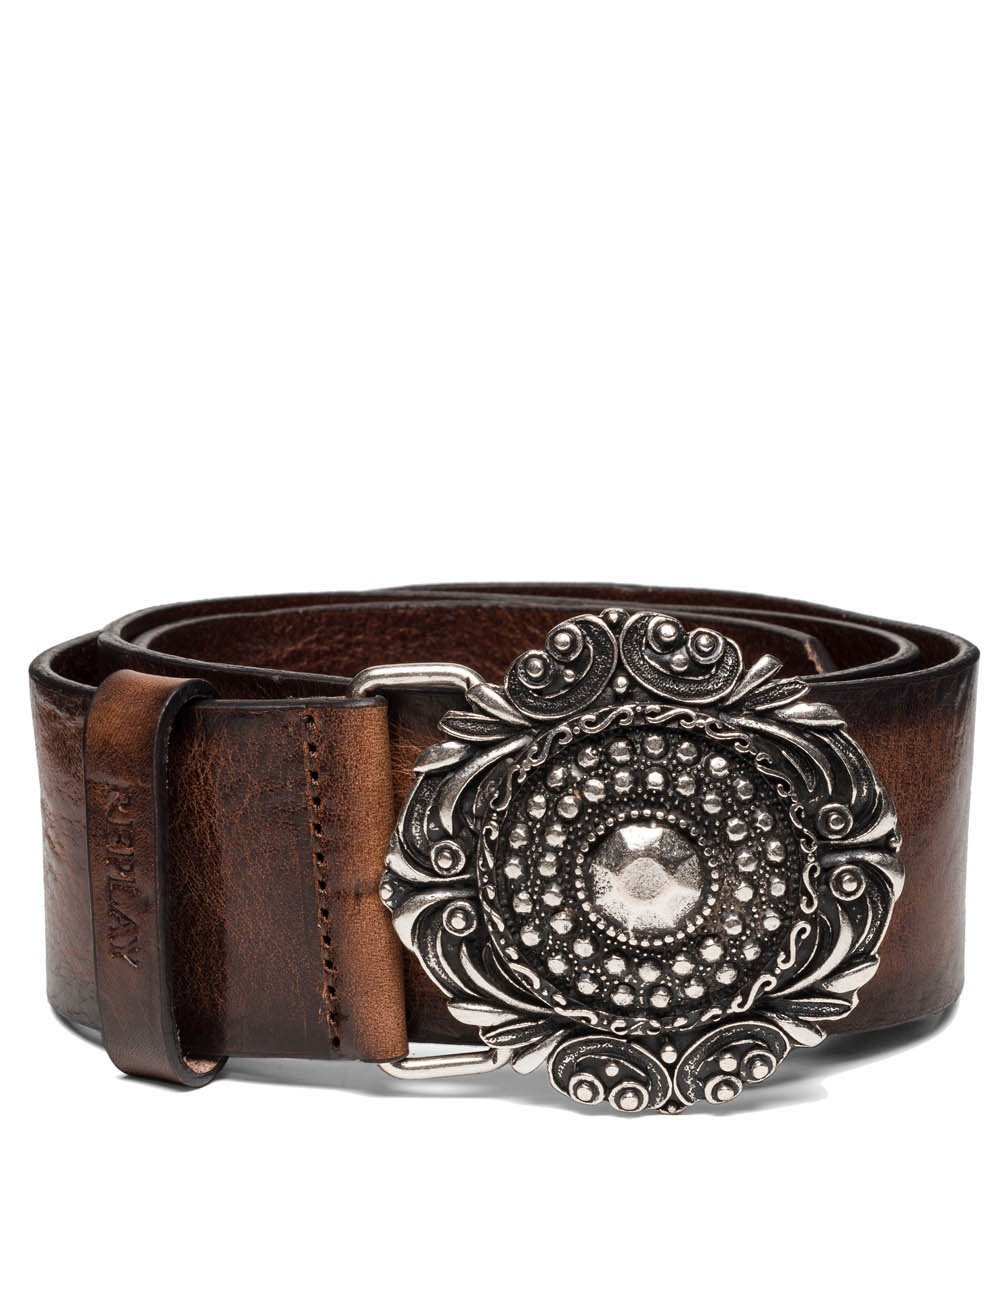 Replay Women's Women's Leather Brown Belt With Vintage Buckle in Size 85 Brown